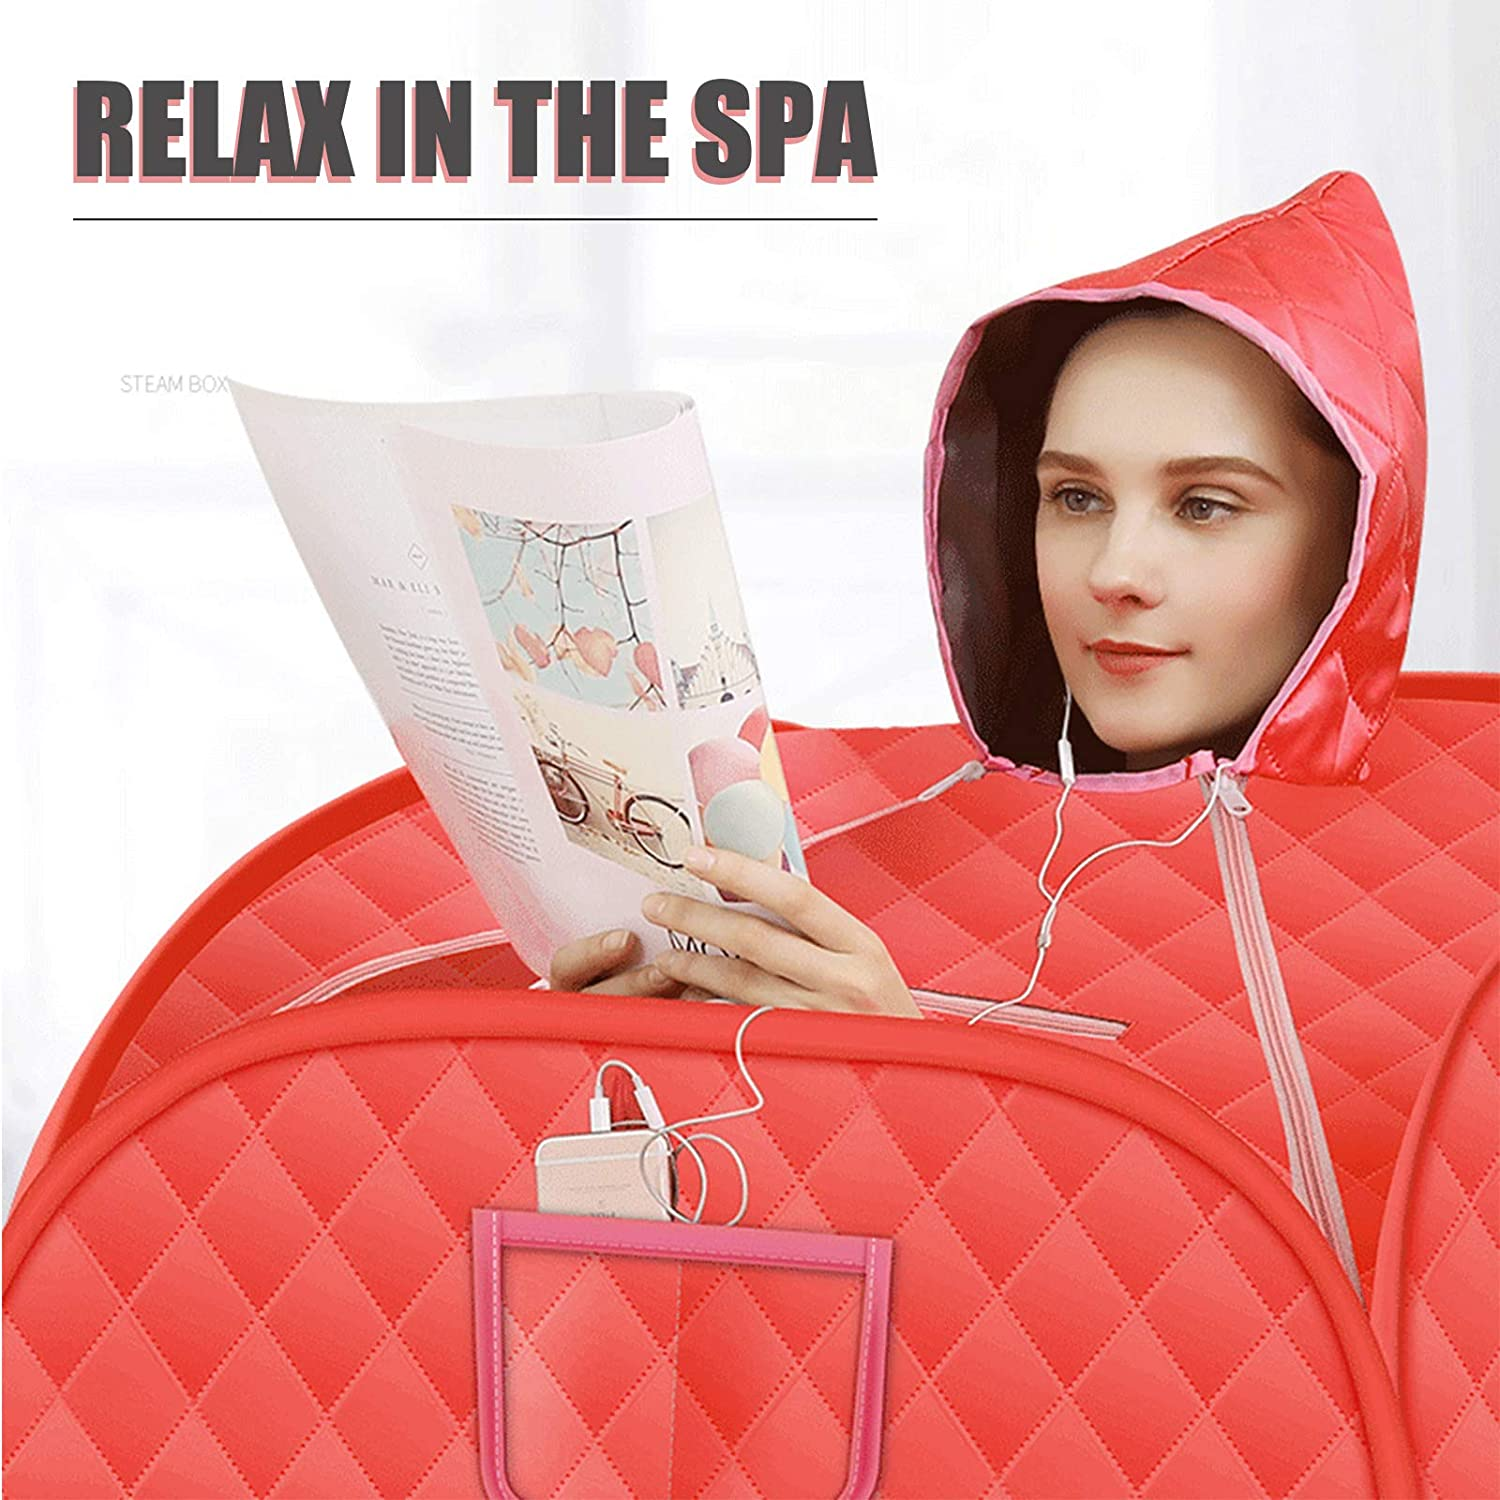 Remote Control Foldable Chair Personal Sauna with 15 Temperature Levels Kacsoo Portable Steam Sauna Therapeutic Sauna Home Spa for Weight Loss Detox Relaxation 2.2L Home Steam Sauna Tent